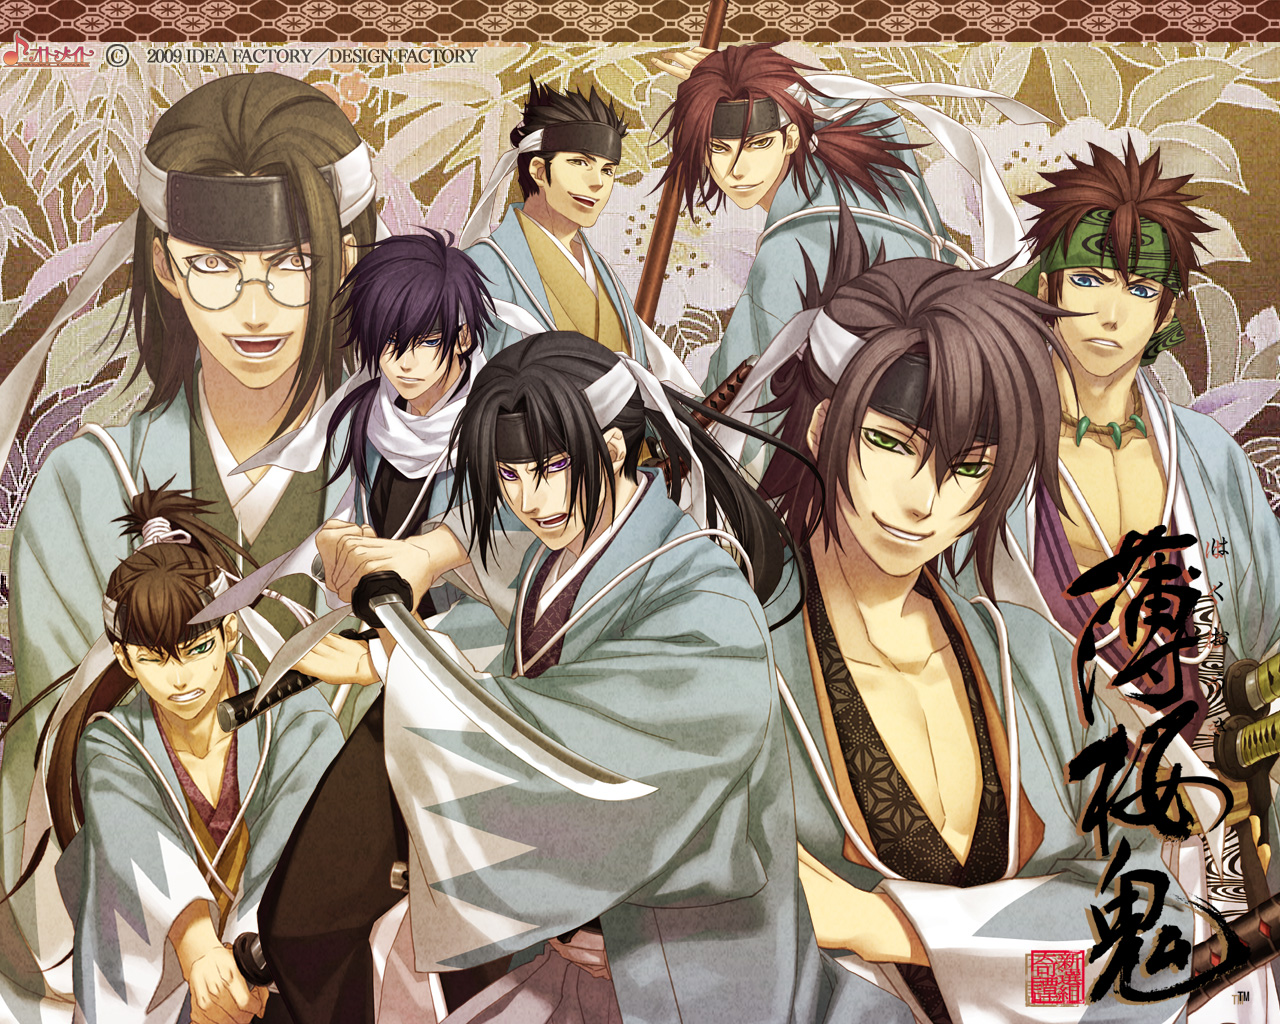 Hakuouki Shinsengumi Kitan HD wallpapers, Desktop wallpaper - most viewed